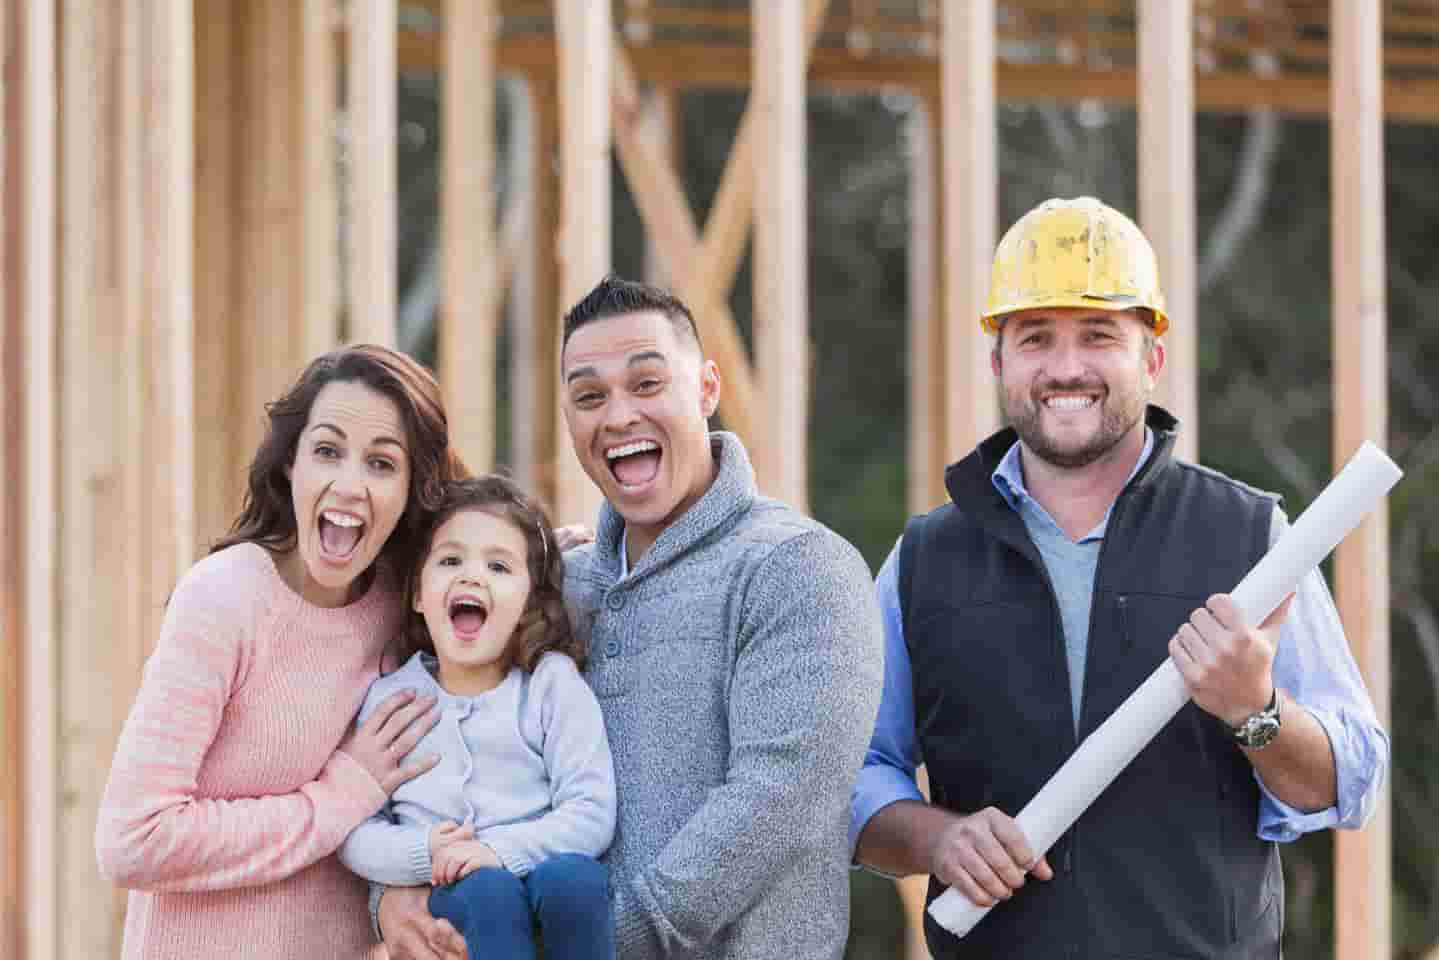 Homeowners seeing their home in framing